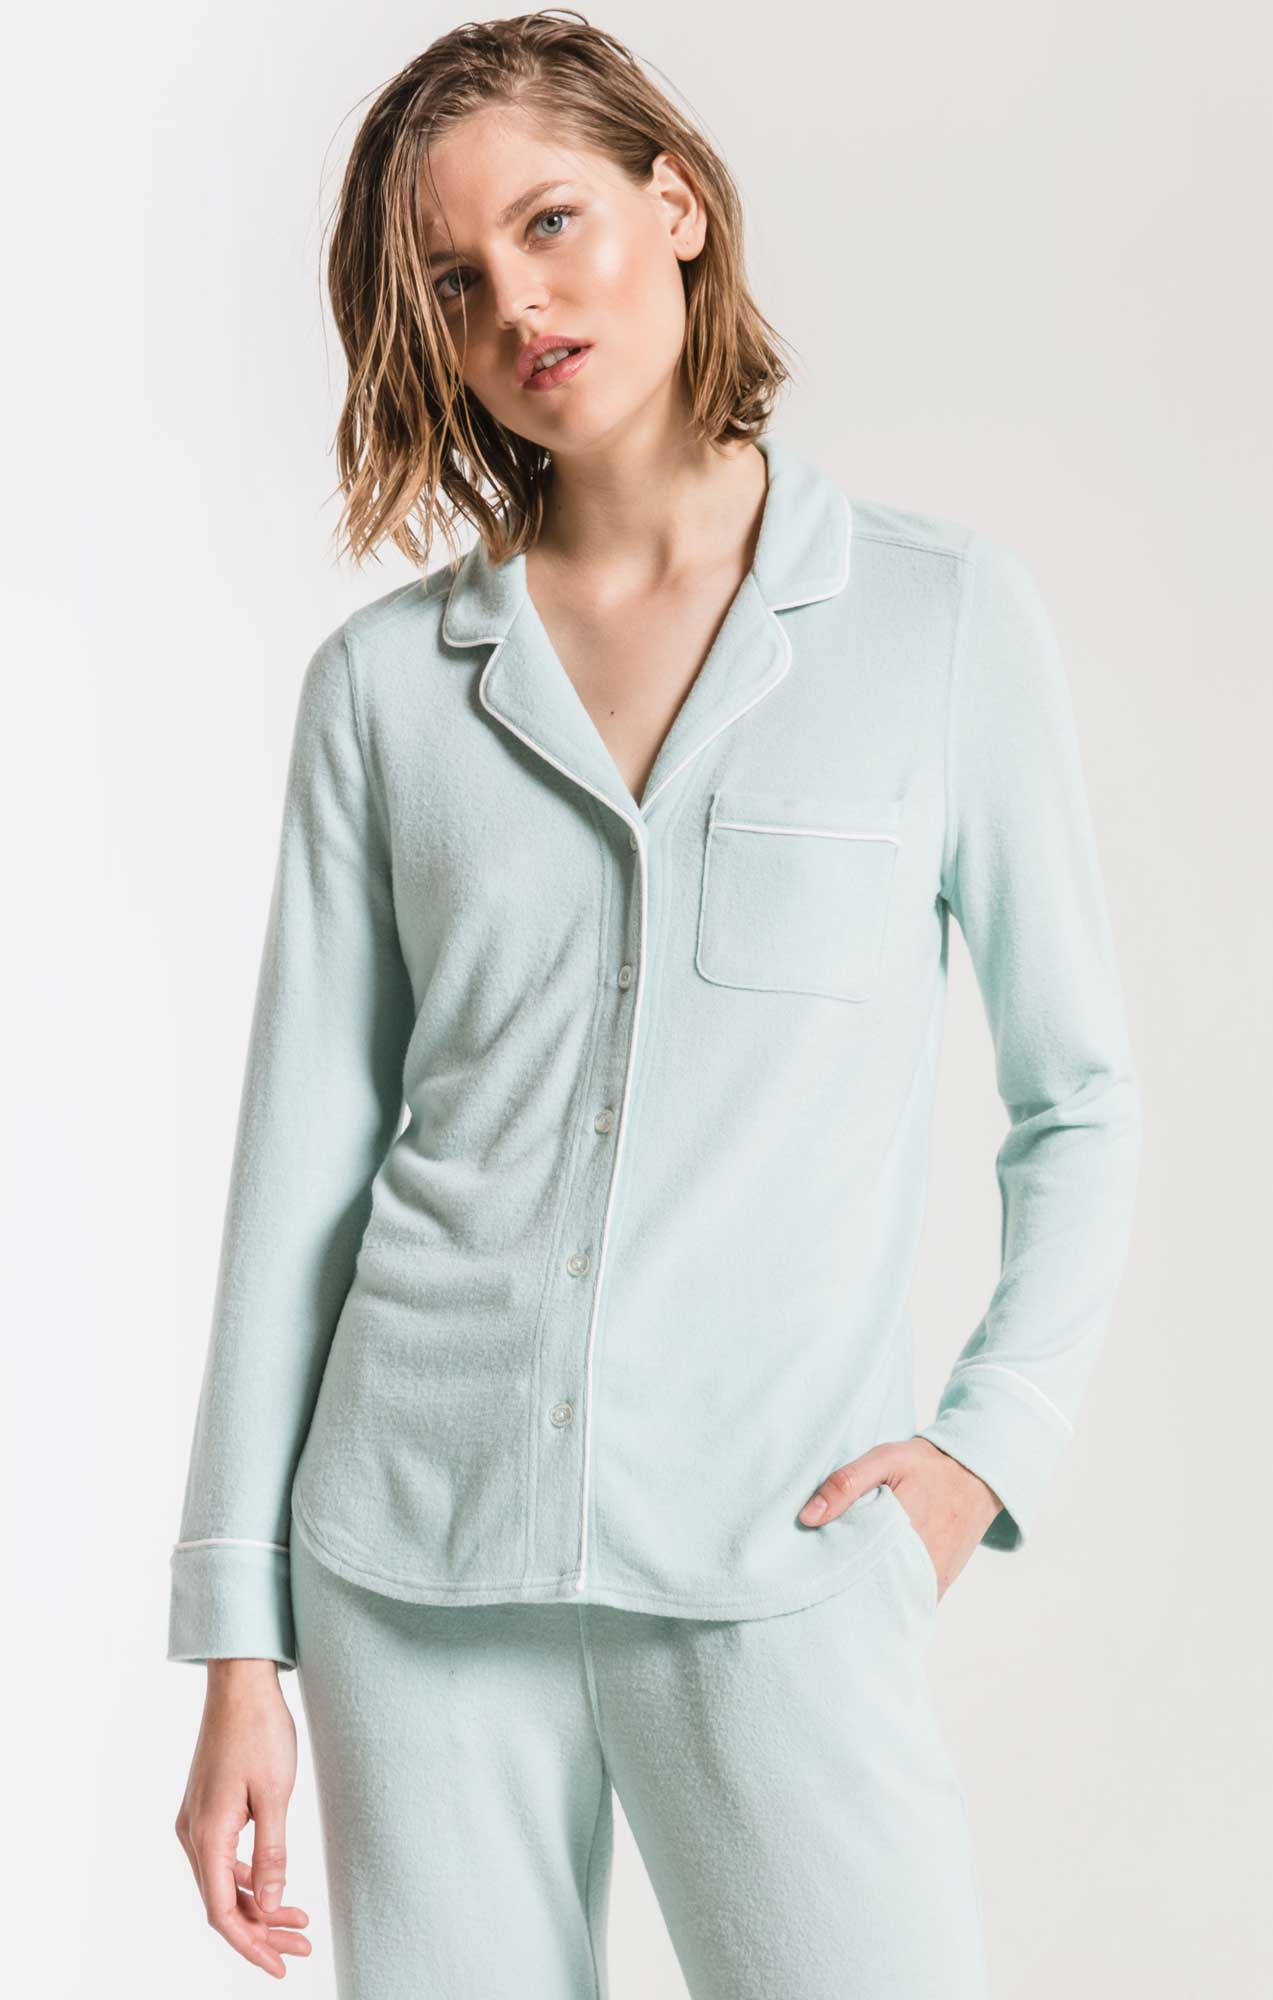 Lounge The Luxe Menswear Pajama Shirt Blue Haze